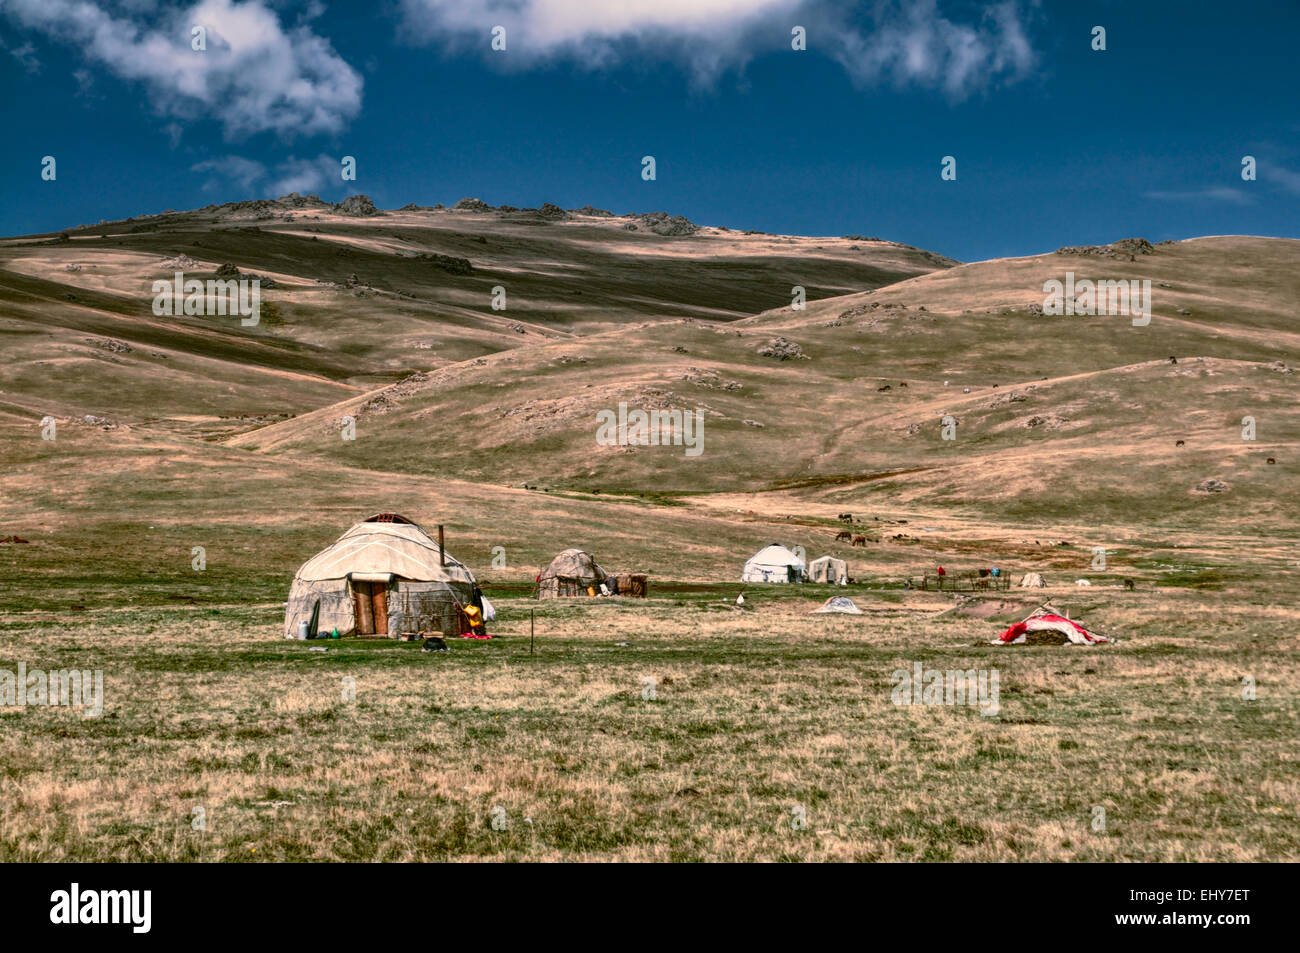 Traditional yurts of nomadic tribes on green grasslands in Kyrgyzstan - Stock Image